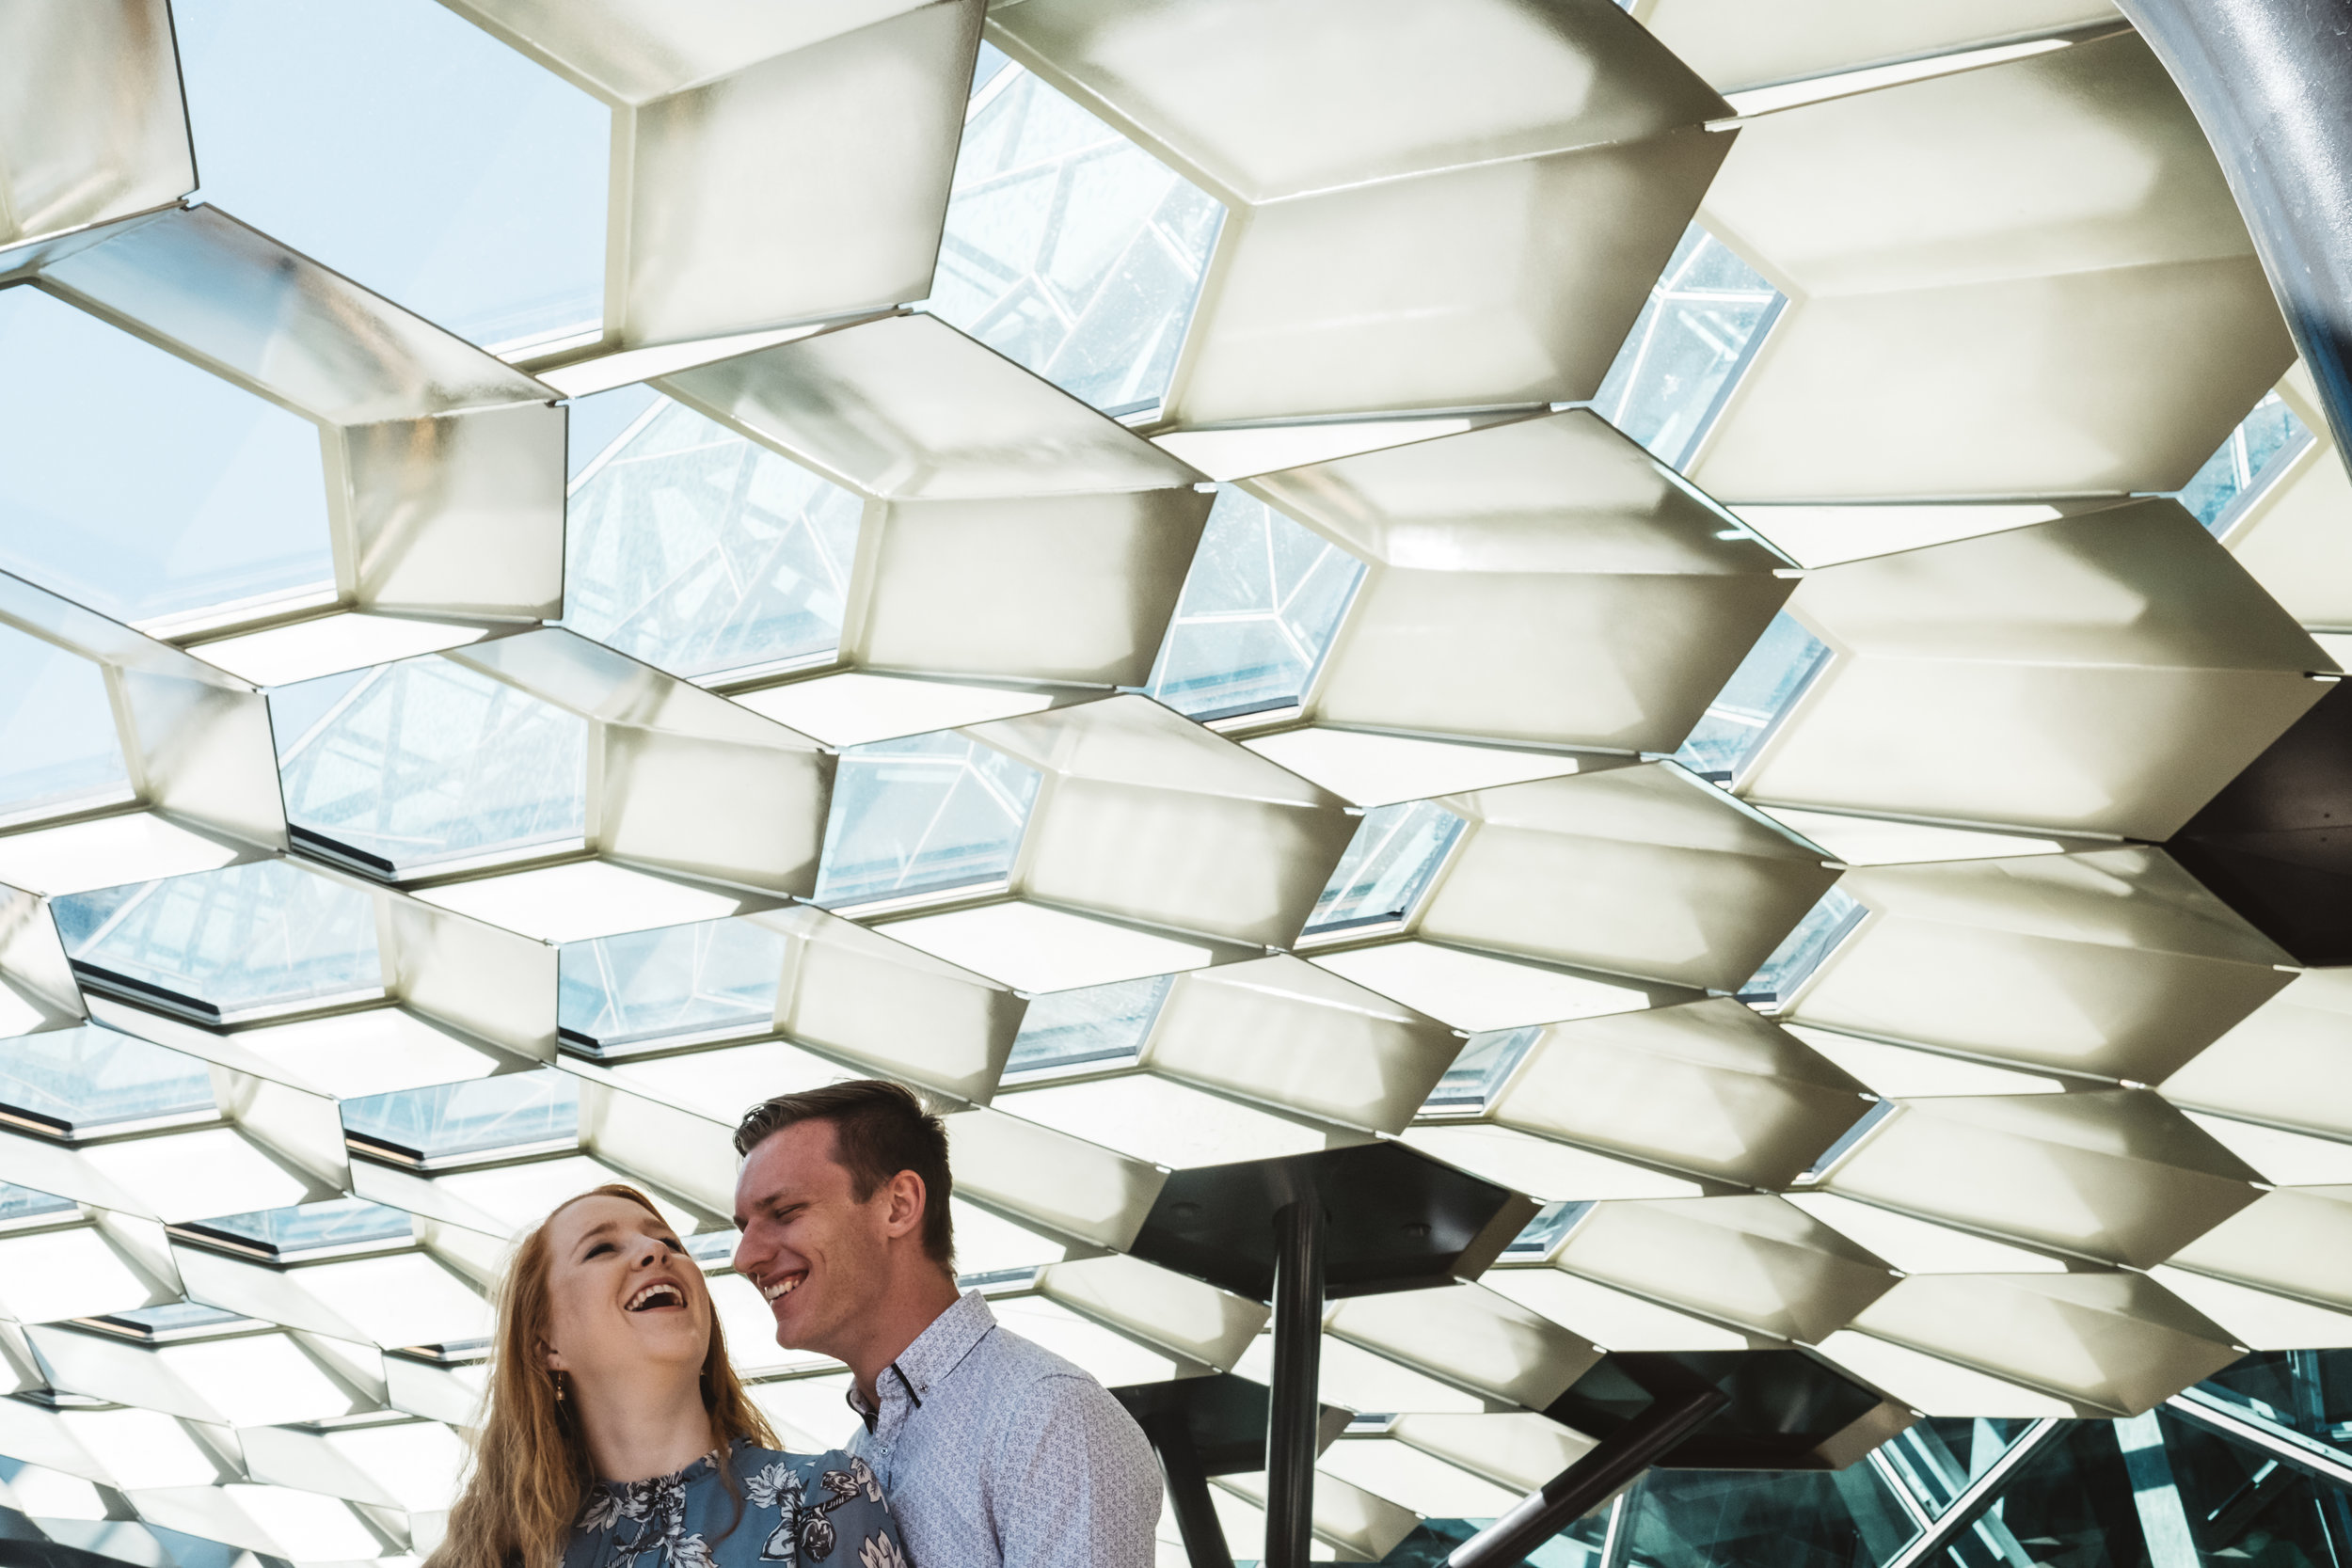 Engagement portraits and wedding portraits in federation square and melbourne CBD available.